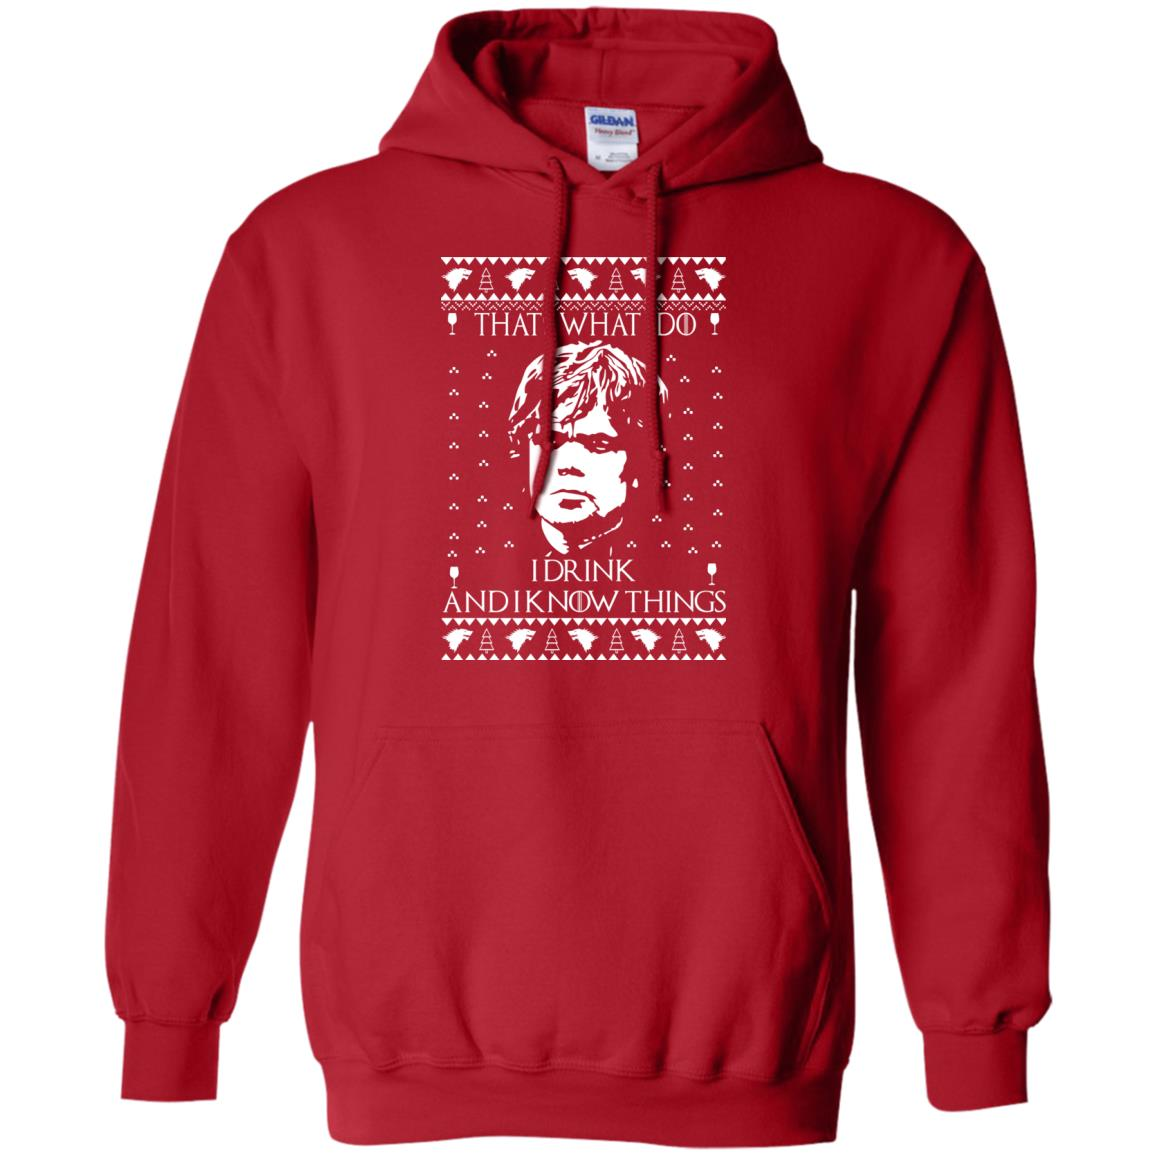 image 3006 - Tyrion Lannister I Drink and I Know Things Ugly Christmas Sweater, Shirt